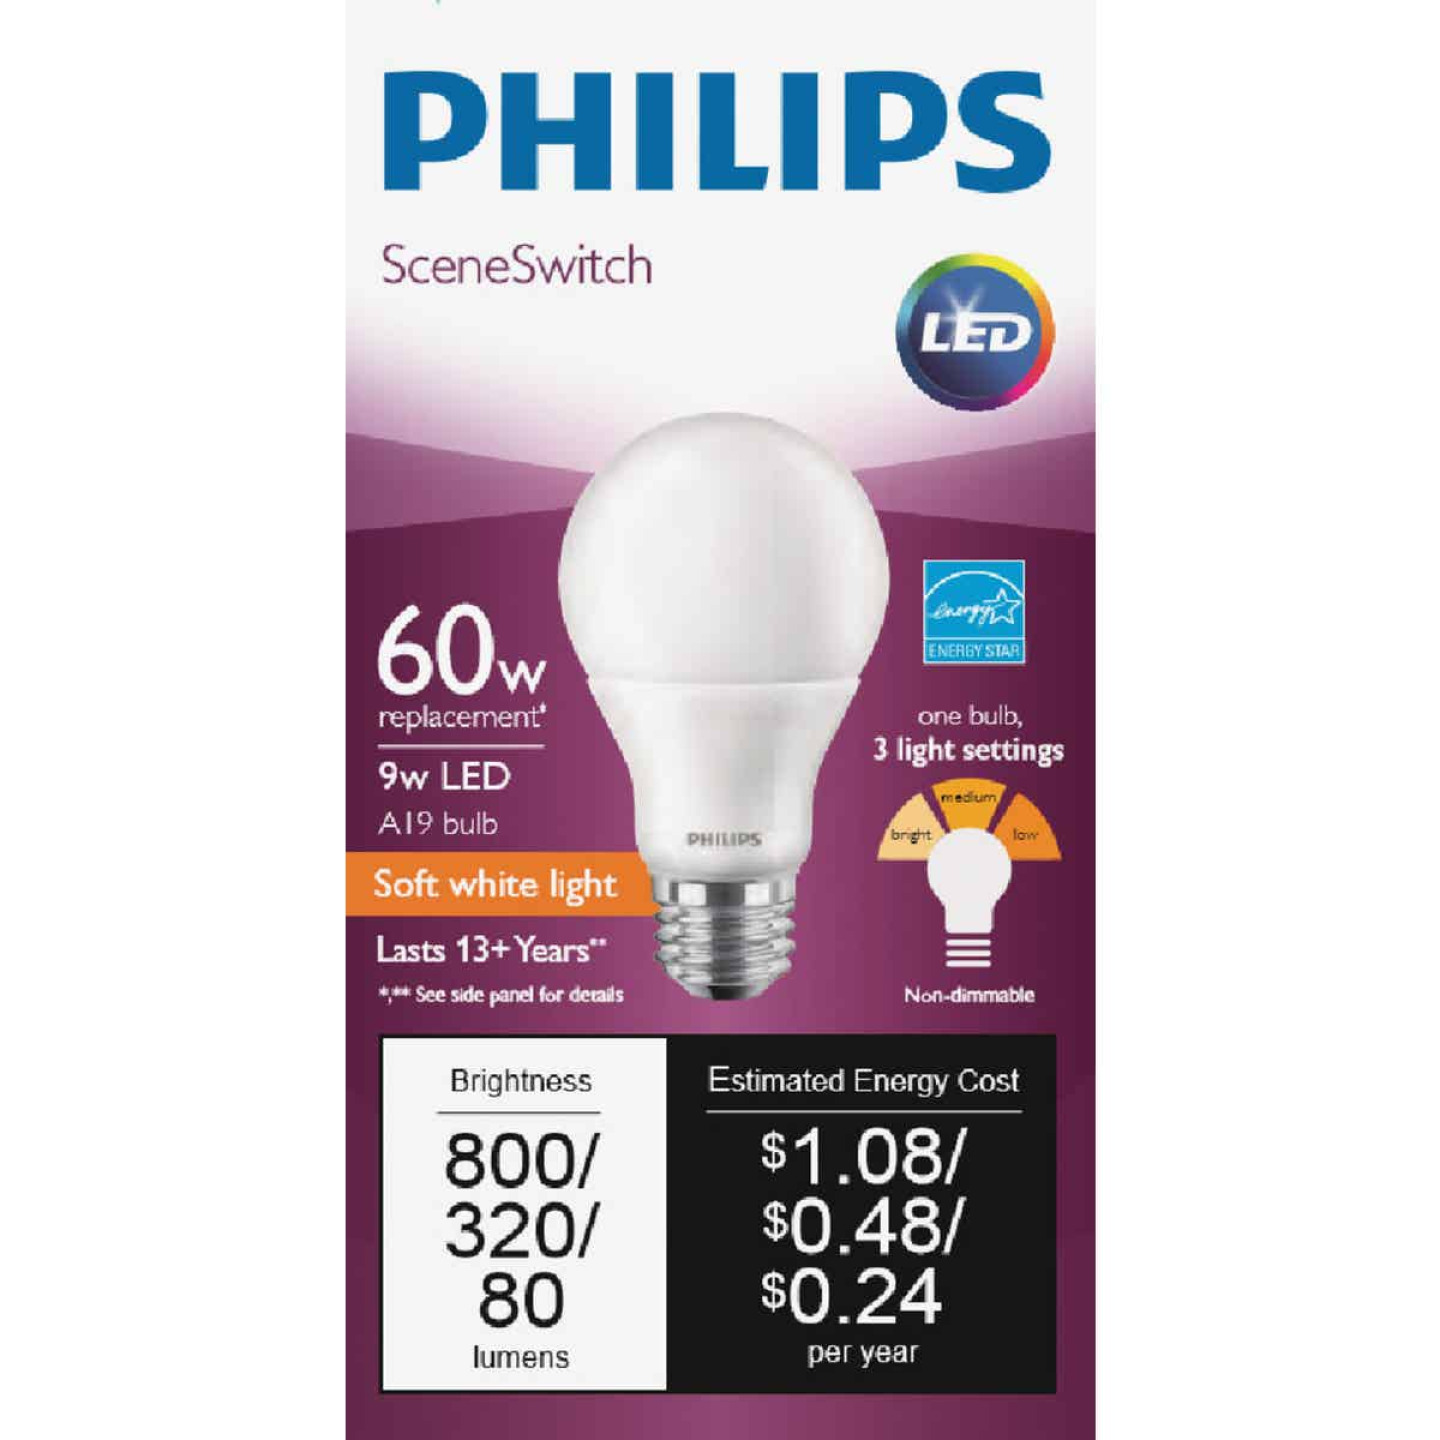 Philips SceneSwitch 60W Equivalent Soft White/Warm White/Warm Glow A19 Medium LED Light Bulb Image 2